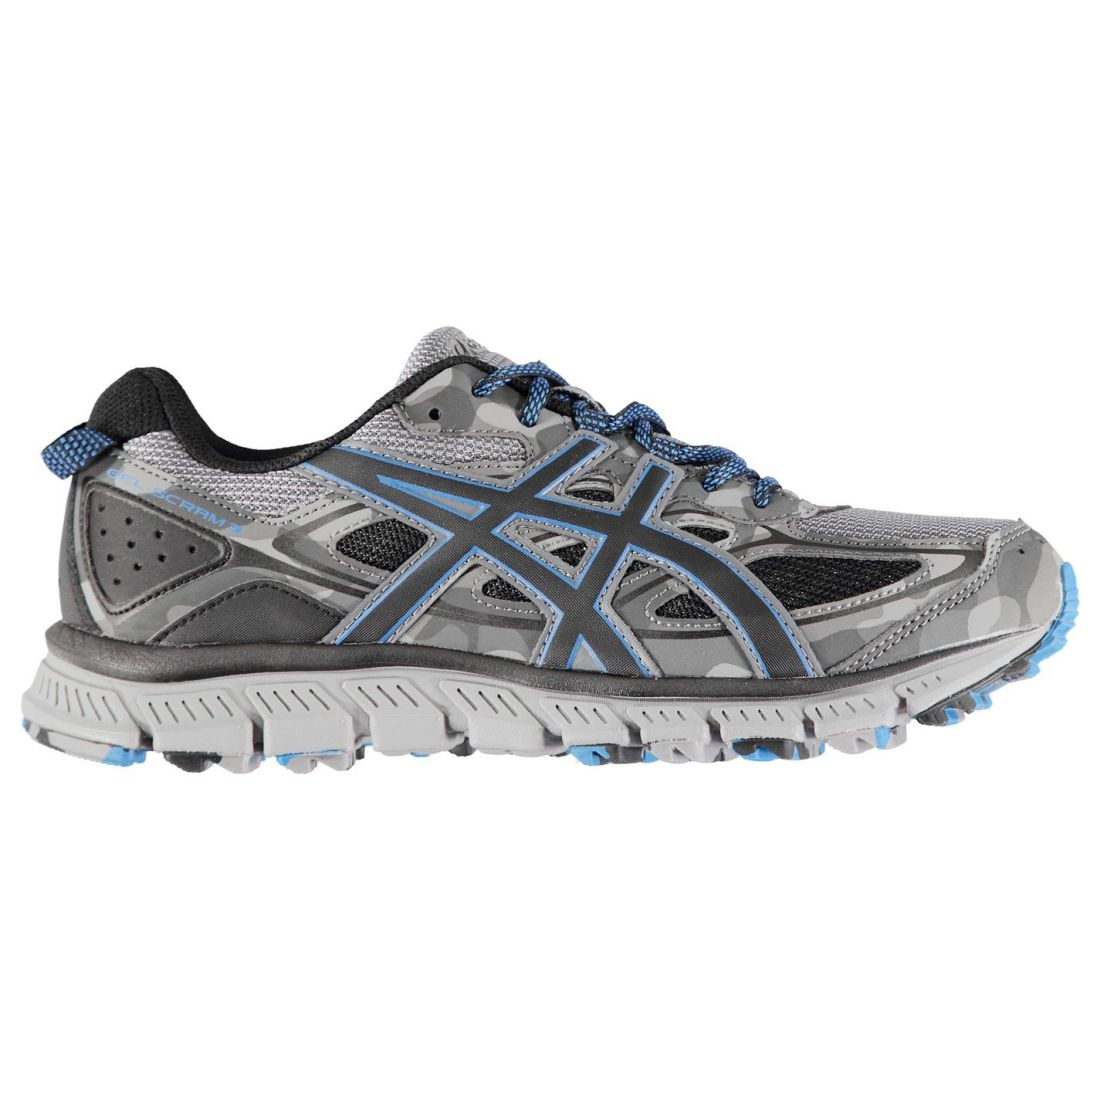 Asics Gel Scram 3 Running shoes Mens Gents Trail Laces Fastened Ventilated